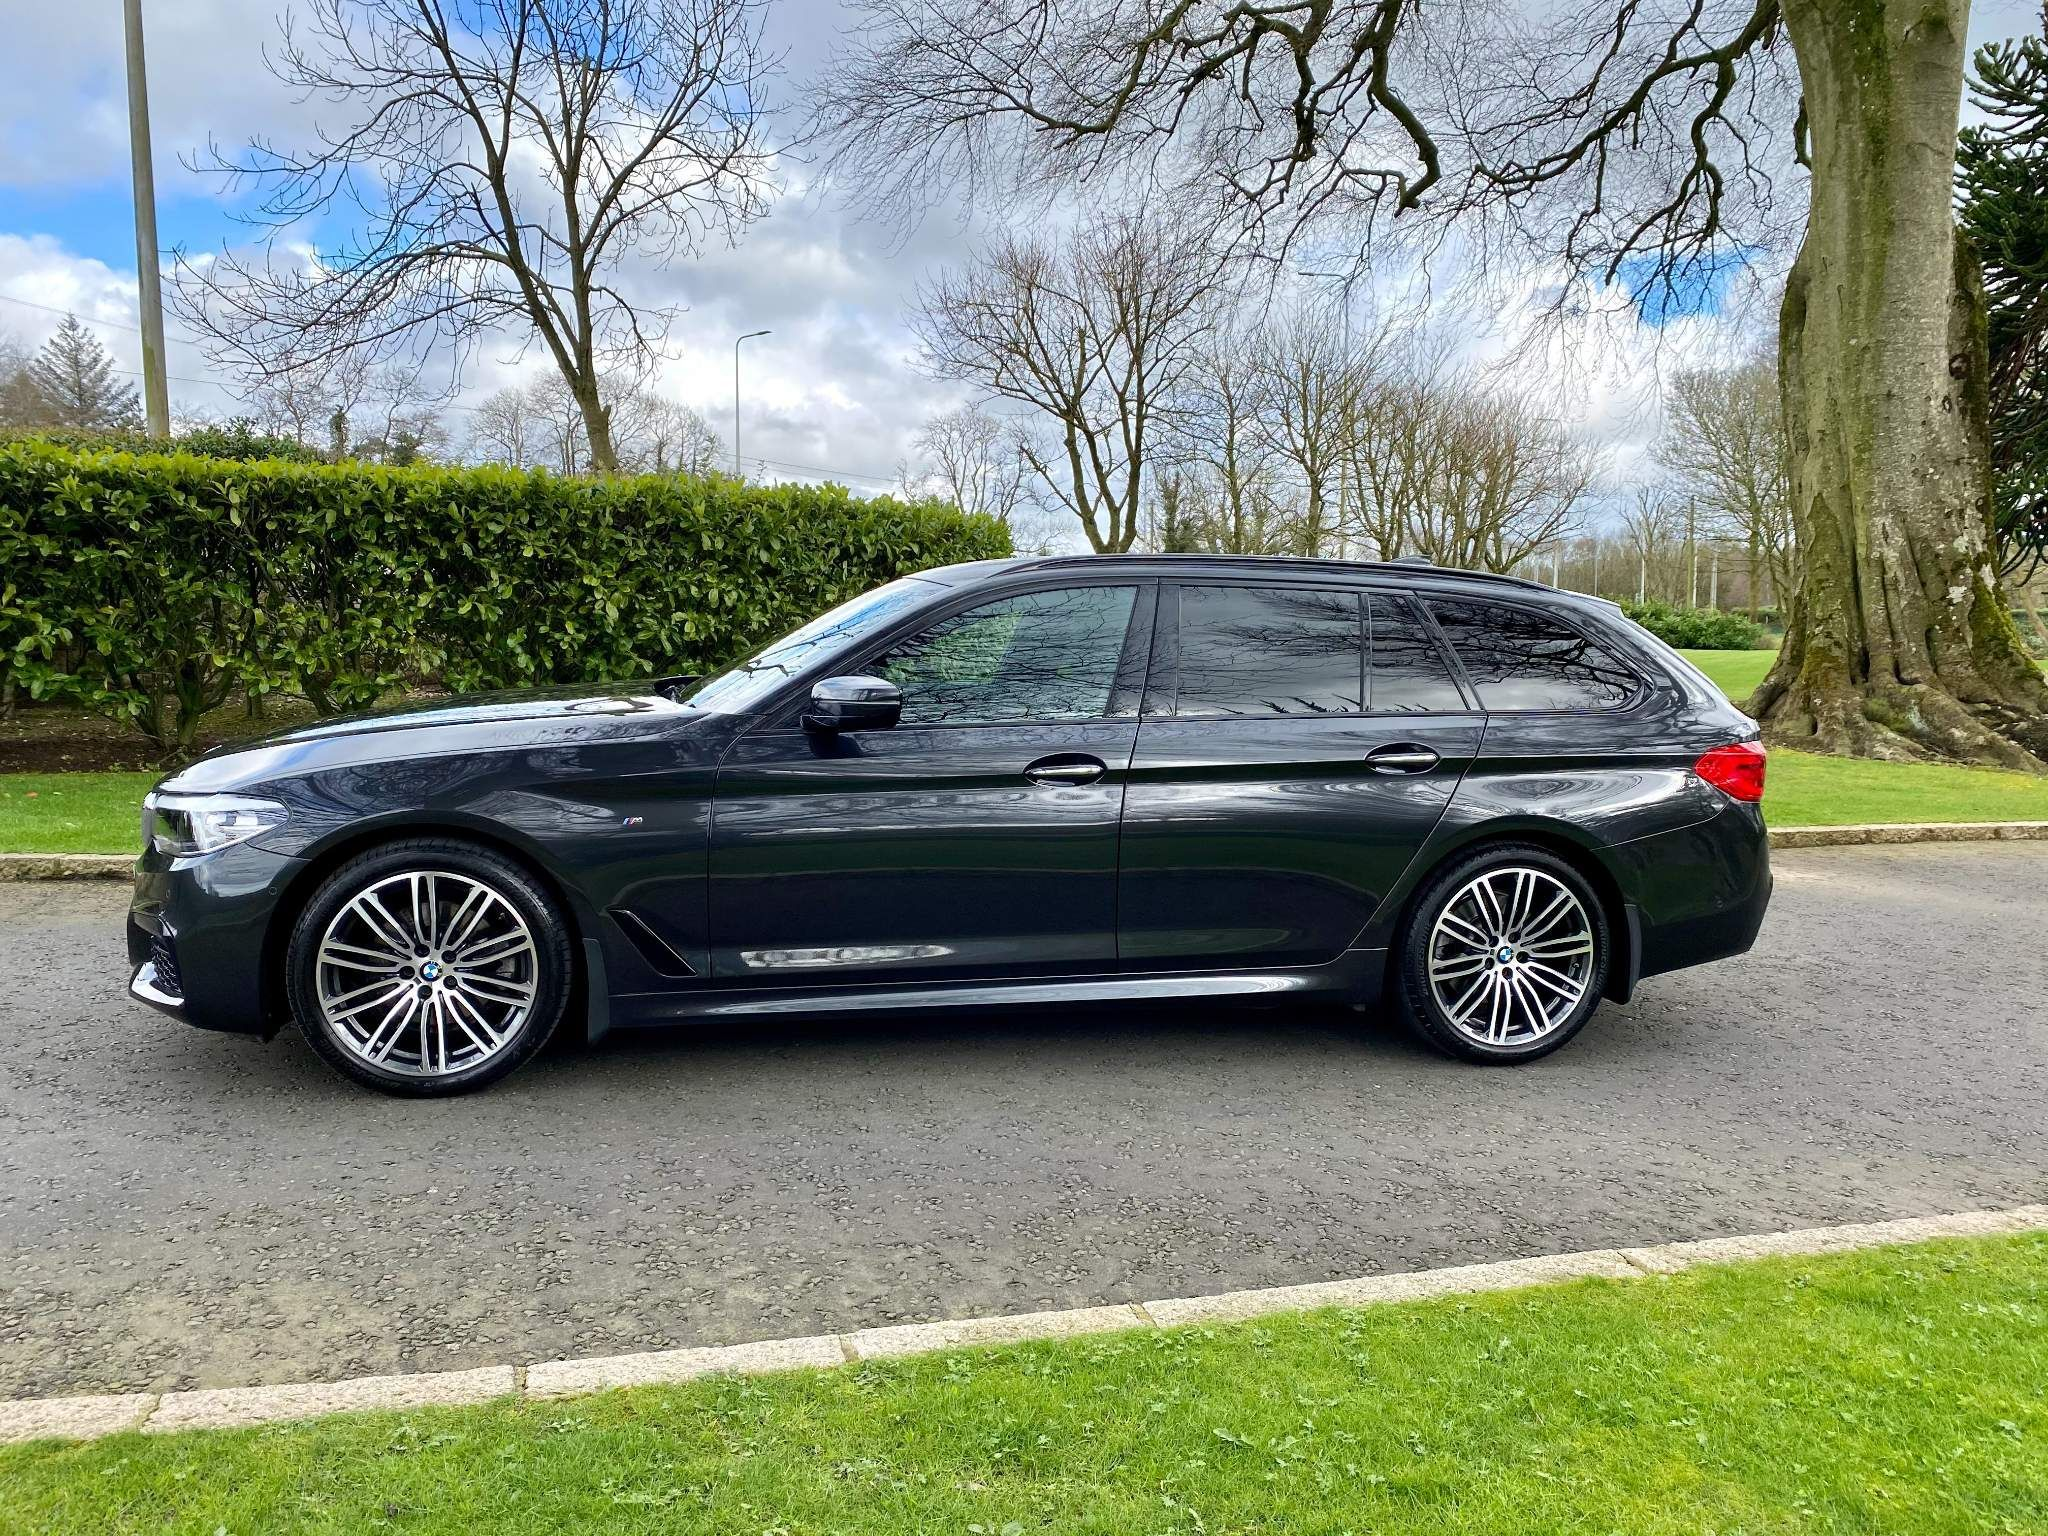 2018 BMW 5 Series 2.0 520d M Sport Touring Auto xDrive (s/s) 5dr Diesel Automatic – Moyway Motors Dungannon full